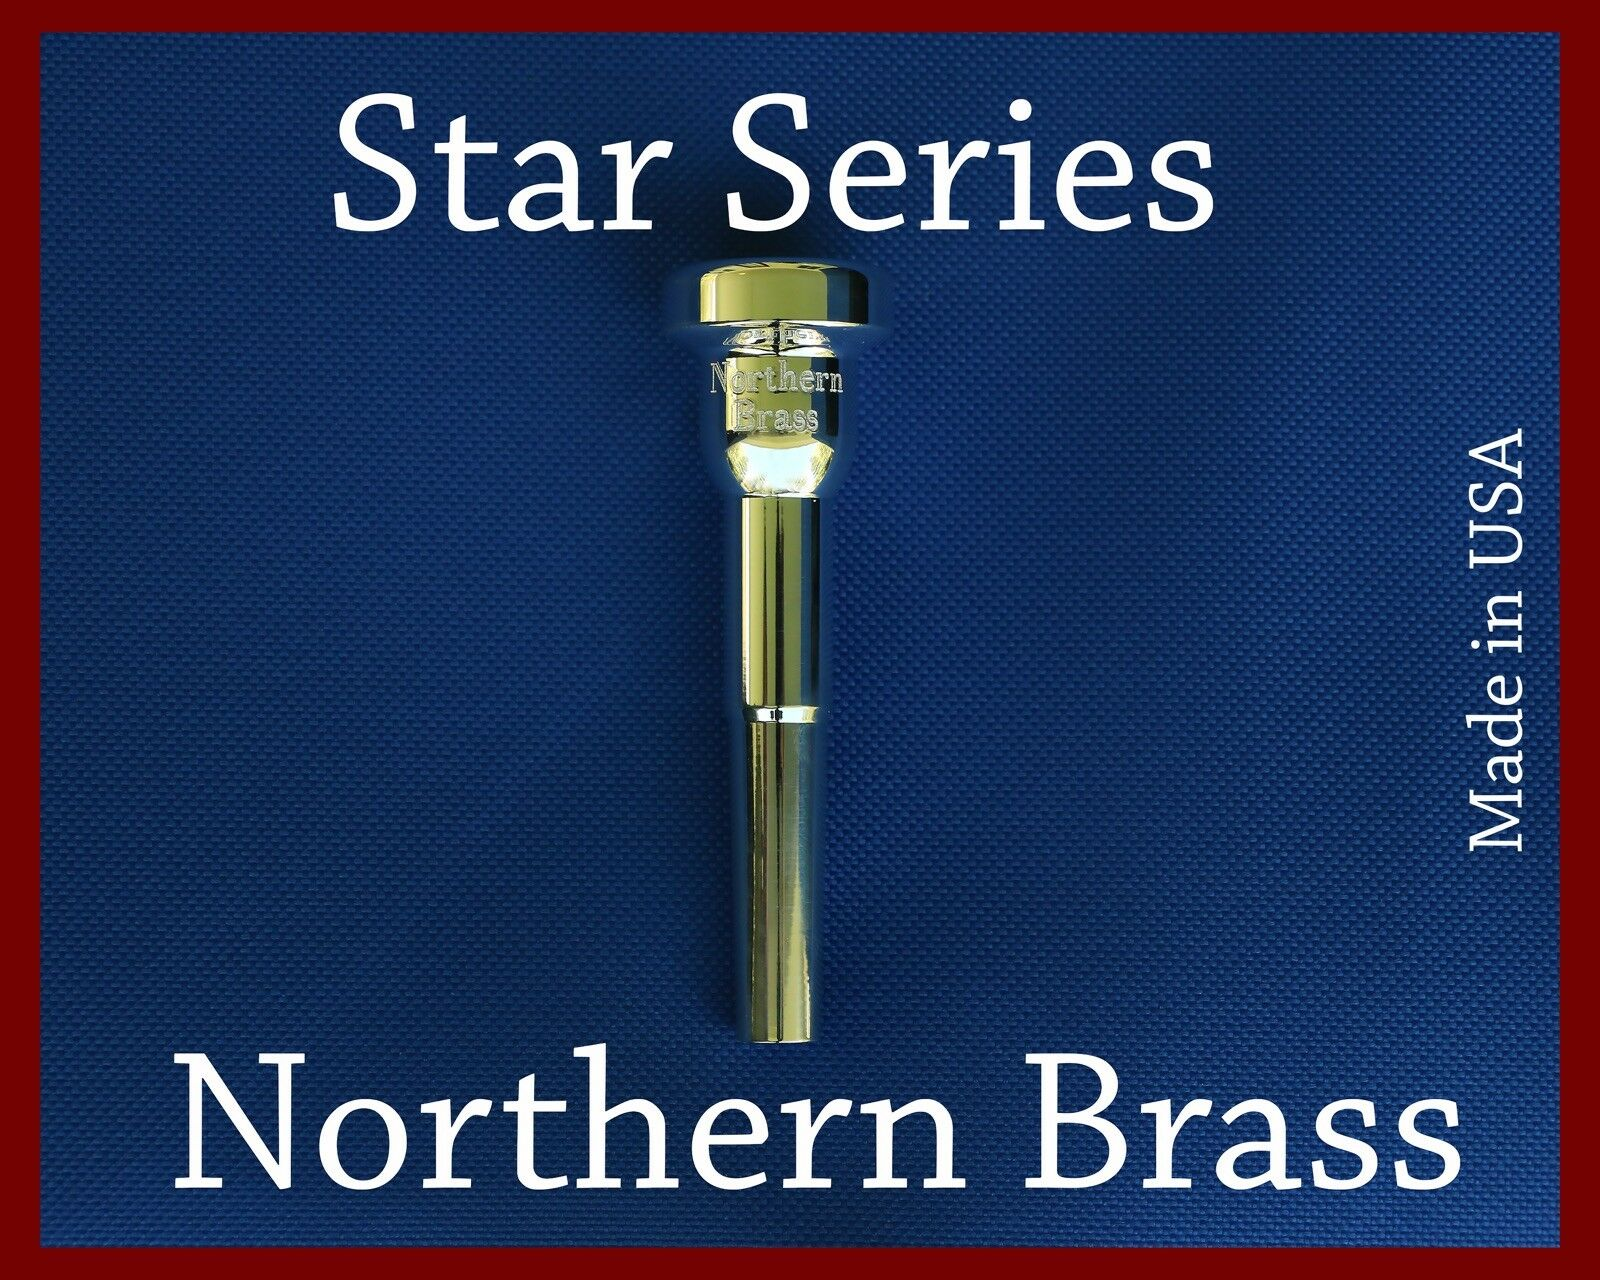 GR Trumpet Mouthpiece 3-63 Northern Brass Mouthpieces by GR Super Screamer